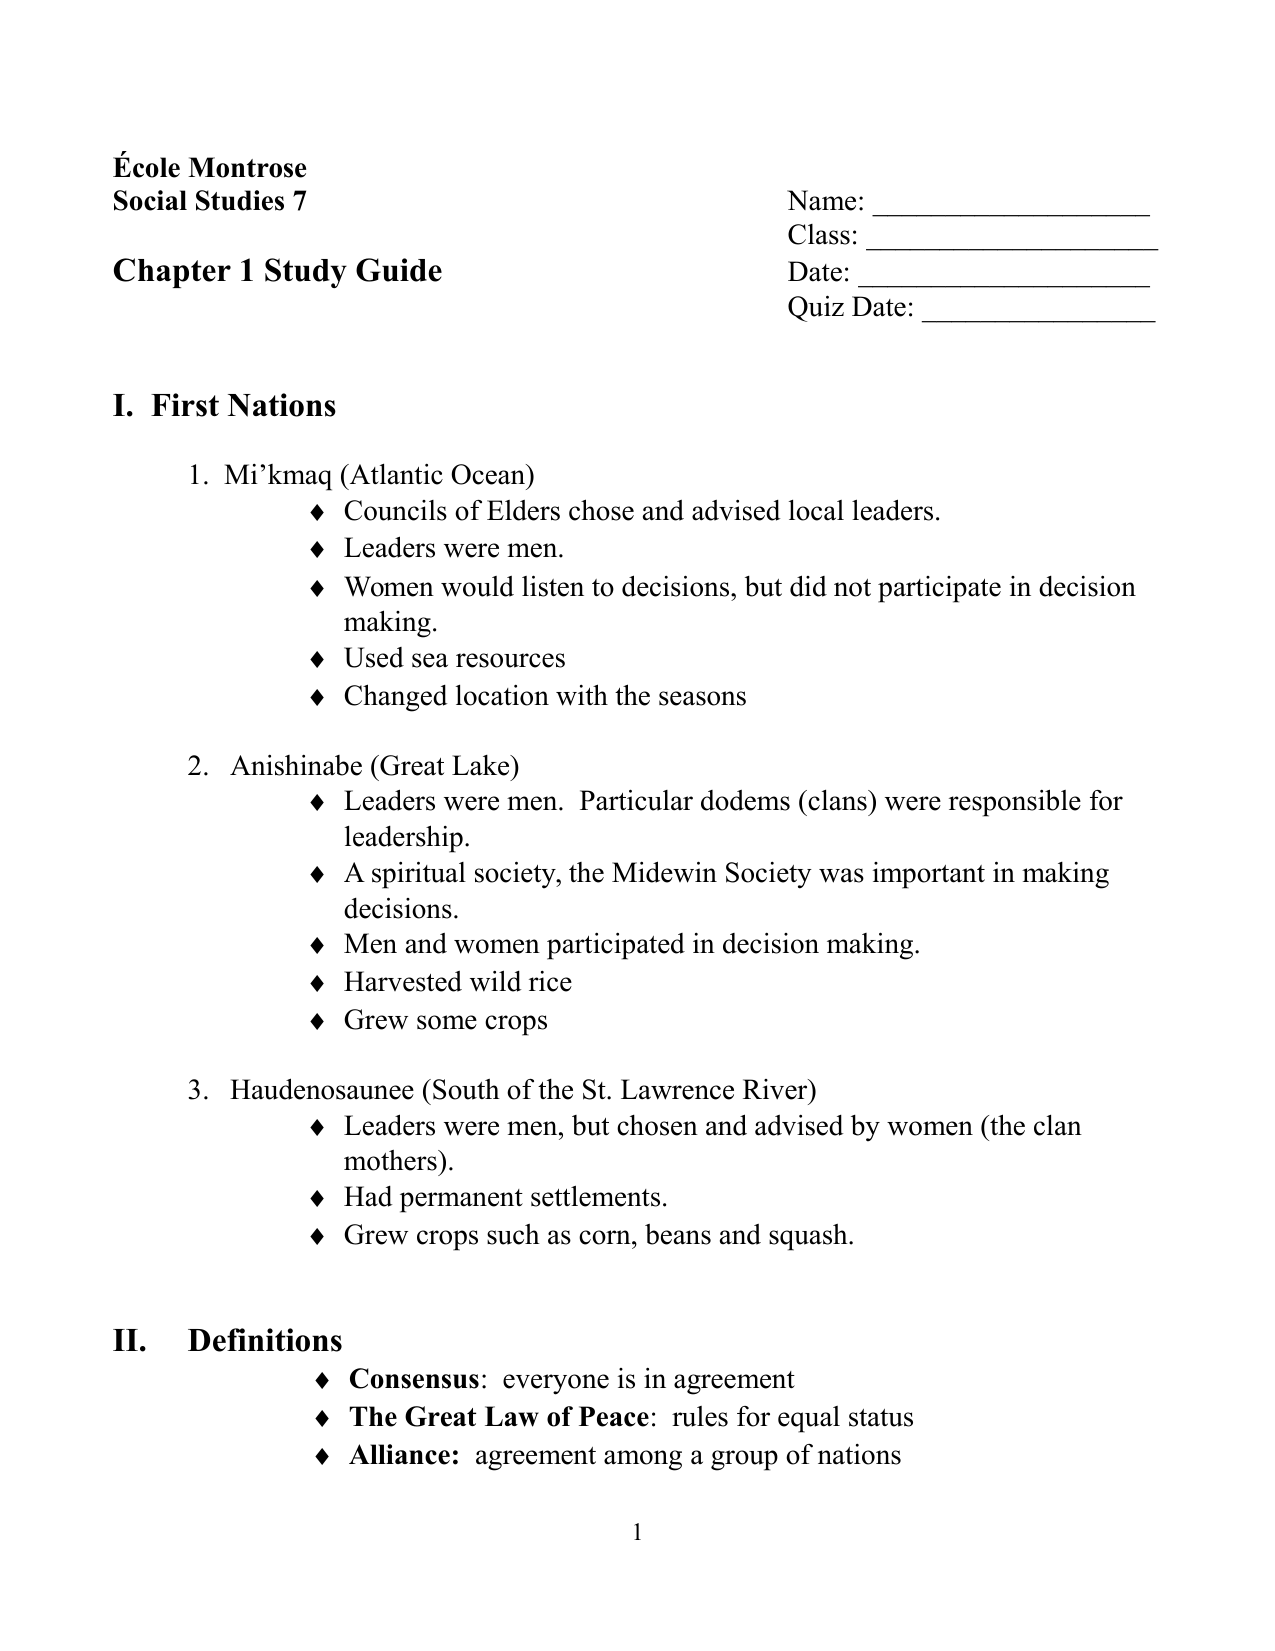 Our Canada Chapter 1 Study Guide